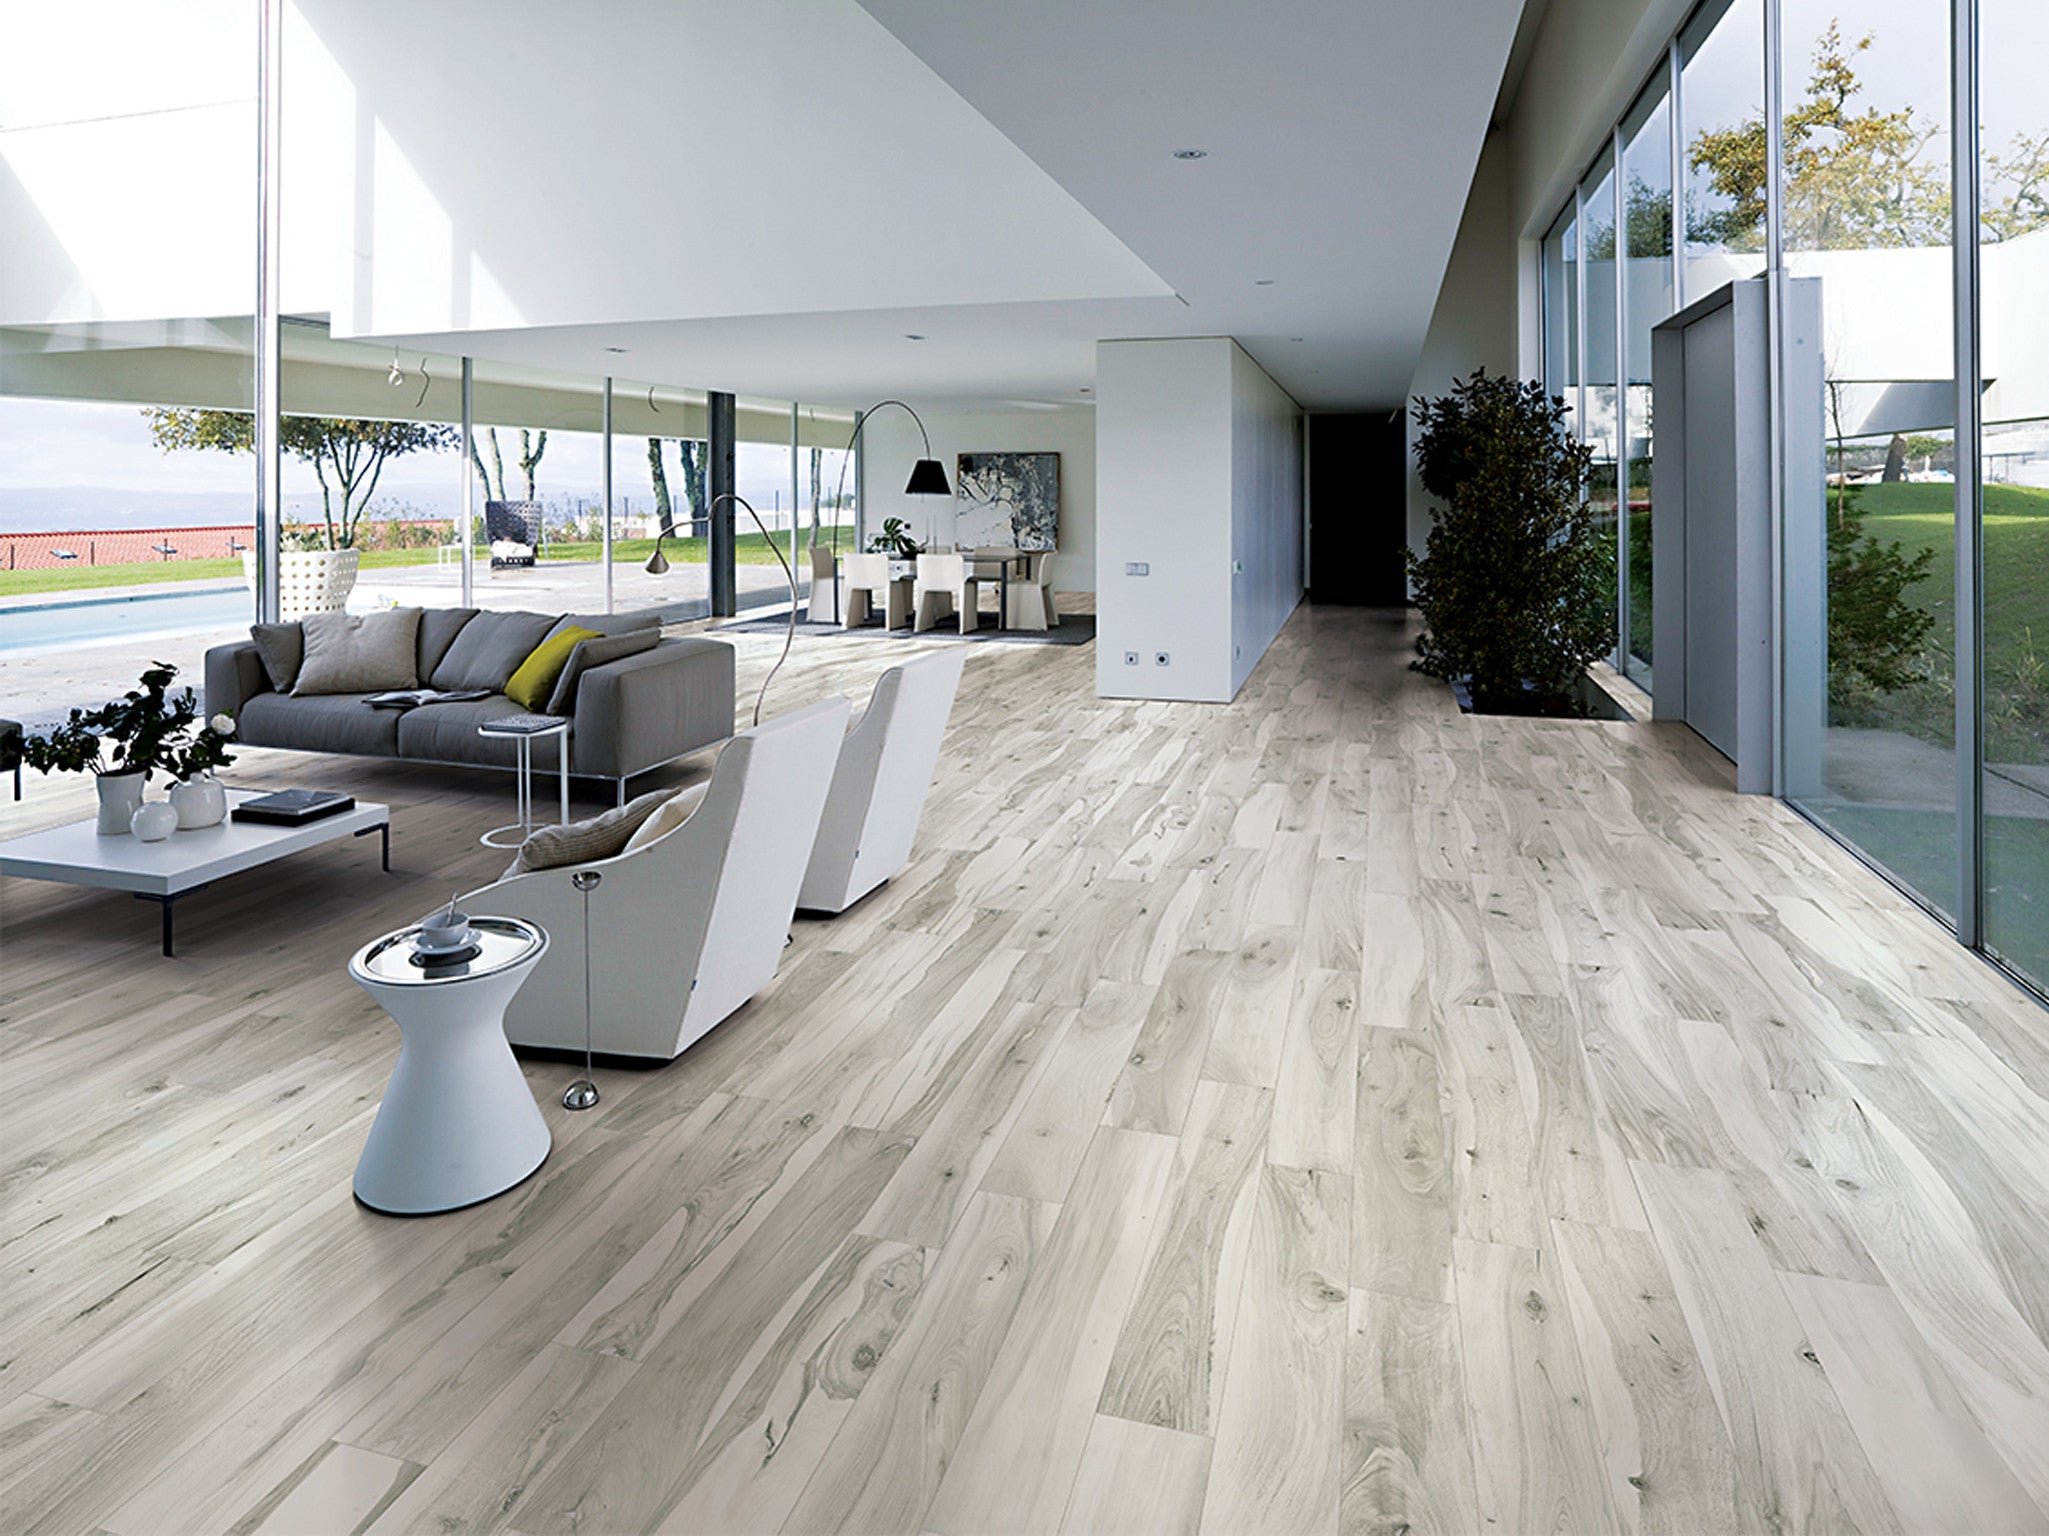 Mto bath and tile mtobathandtile floor tiles dailygadgetfo Images